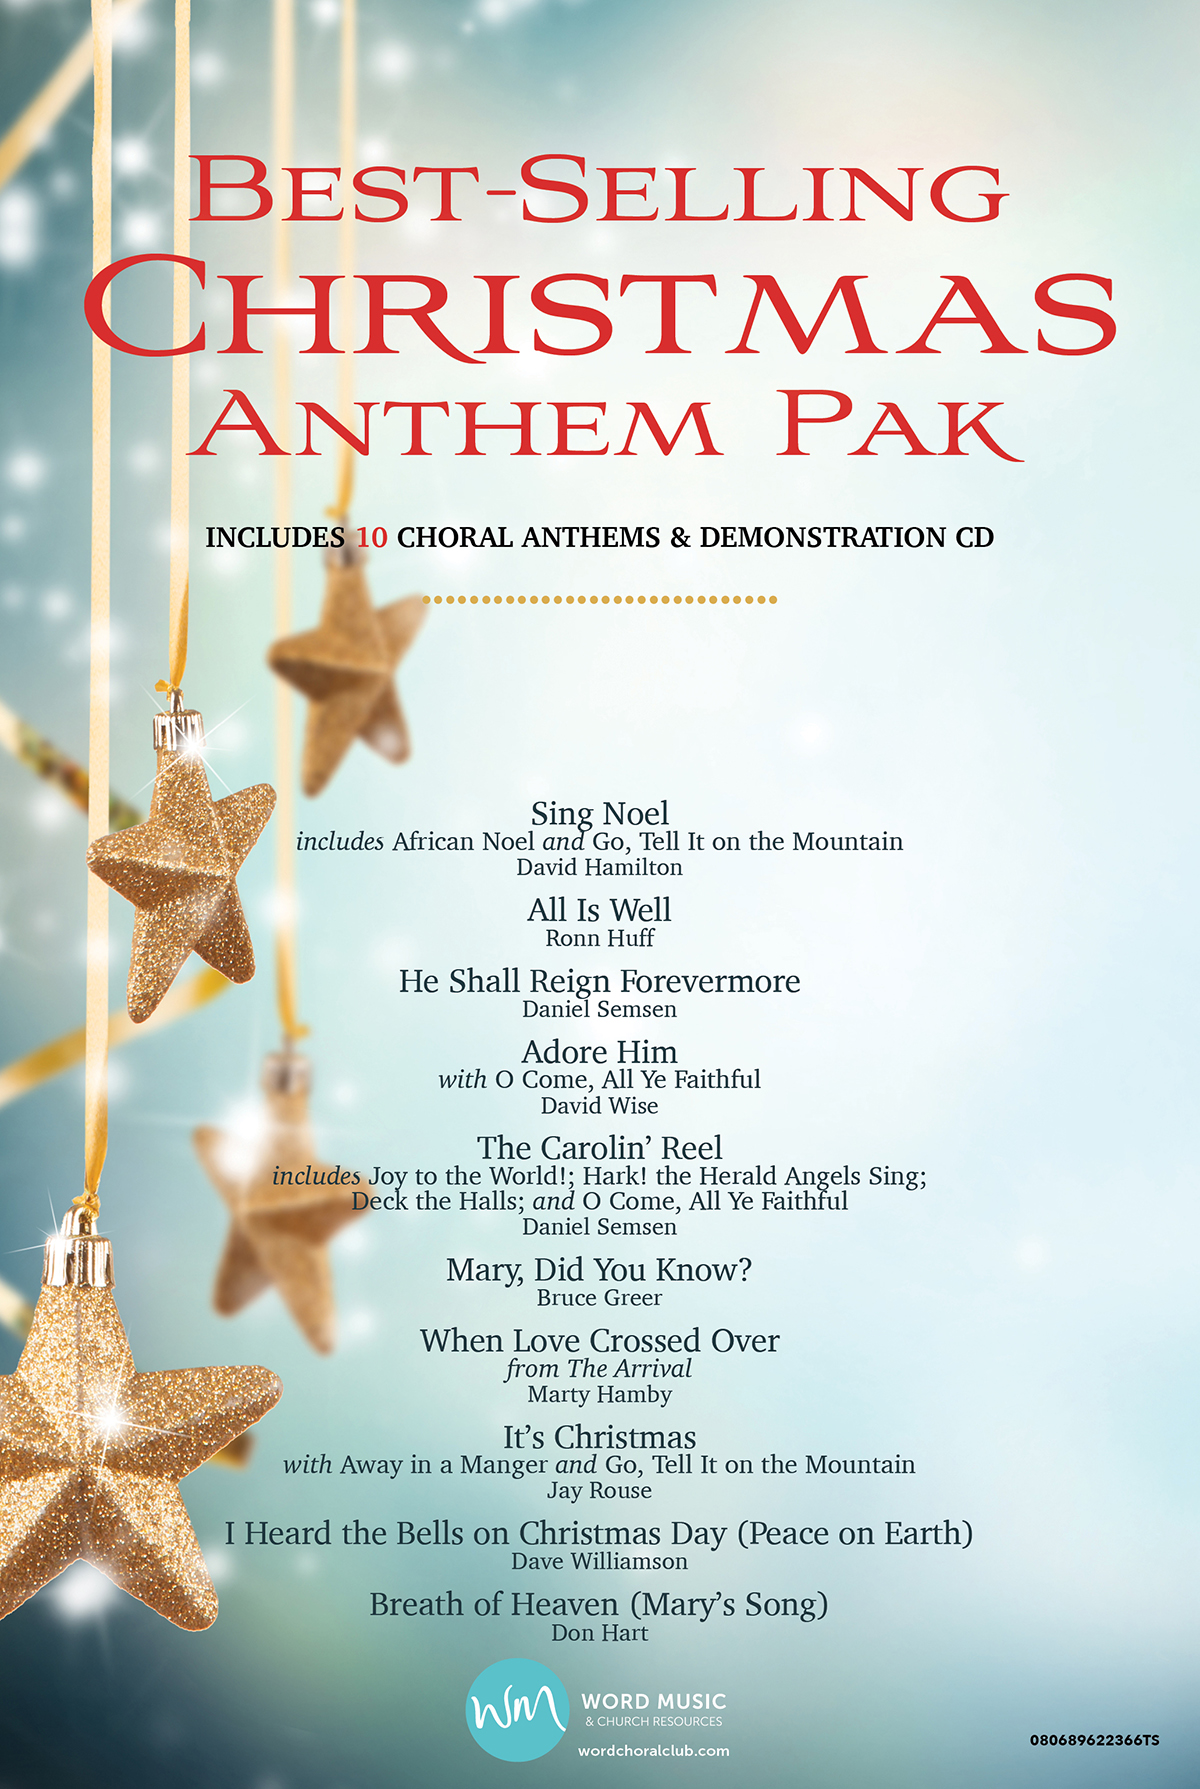 Best-Selling Christmas Anthem Pak Vol 1